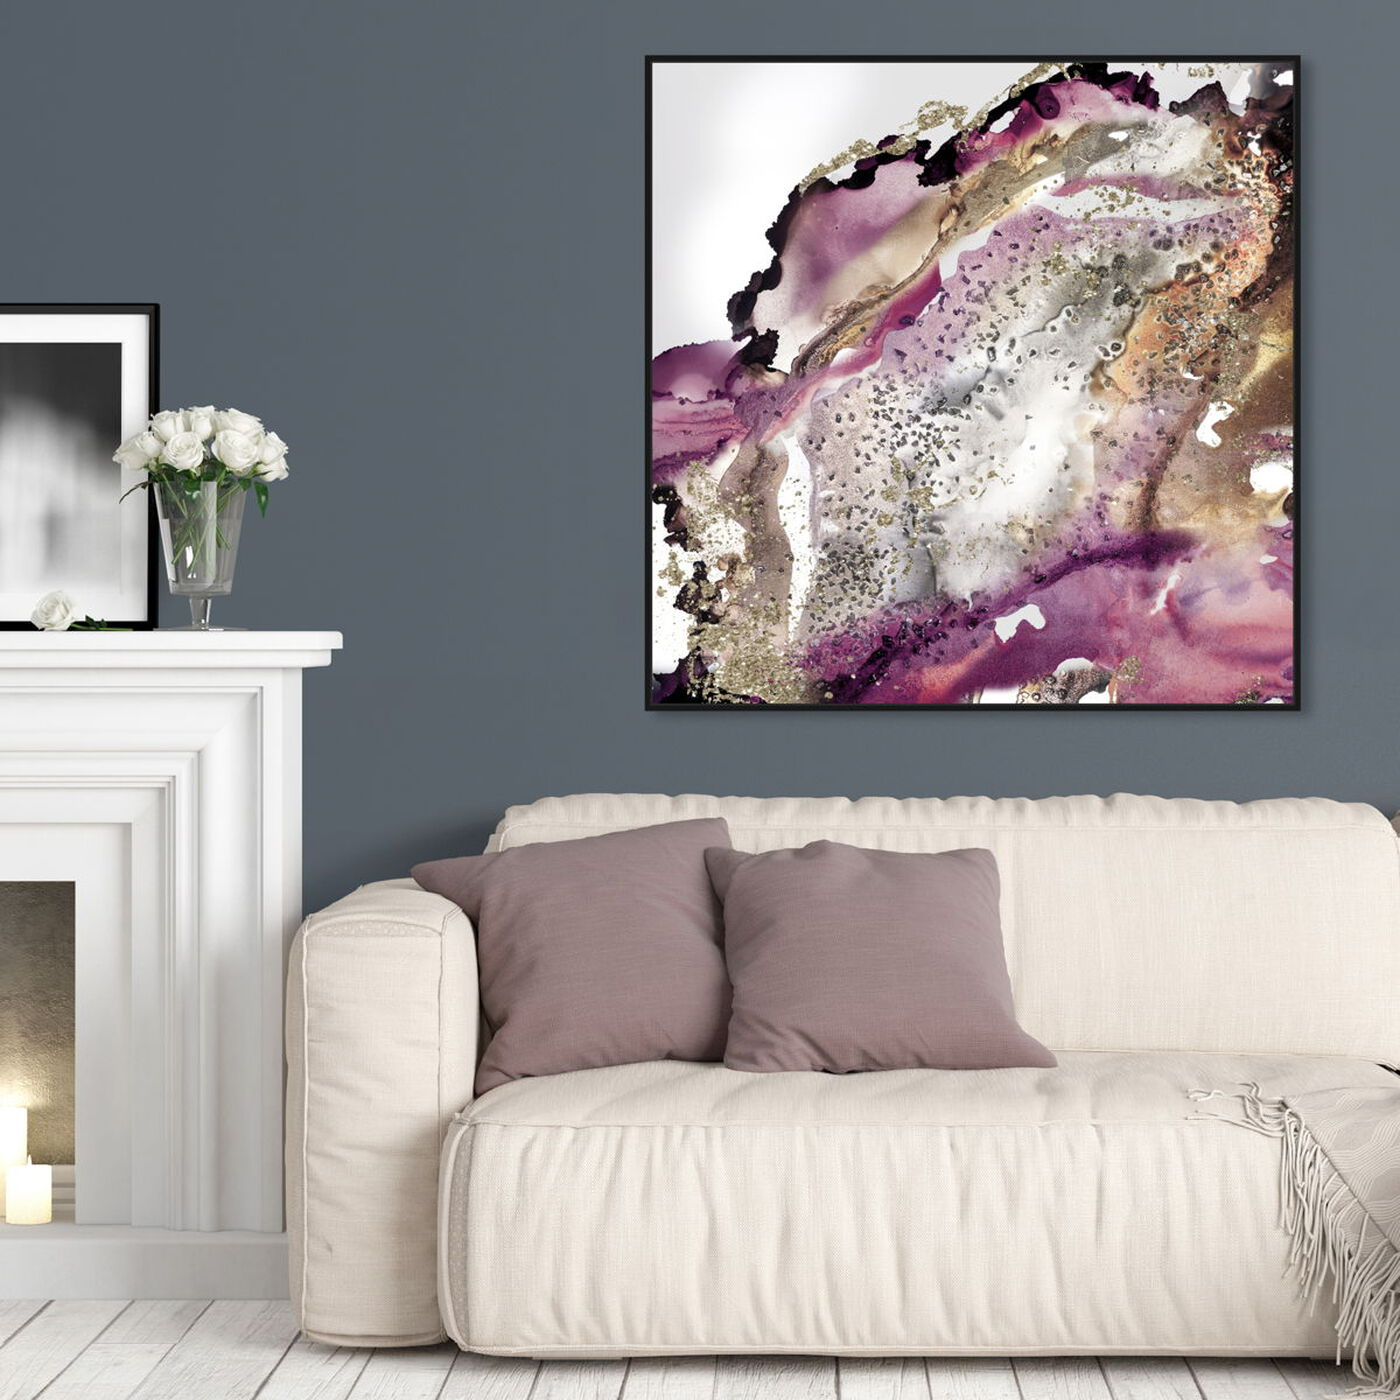 Hanging view of Purple Bang I featuring abstract and watercolor art.